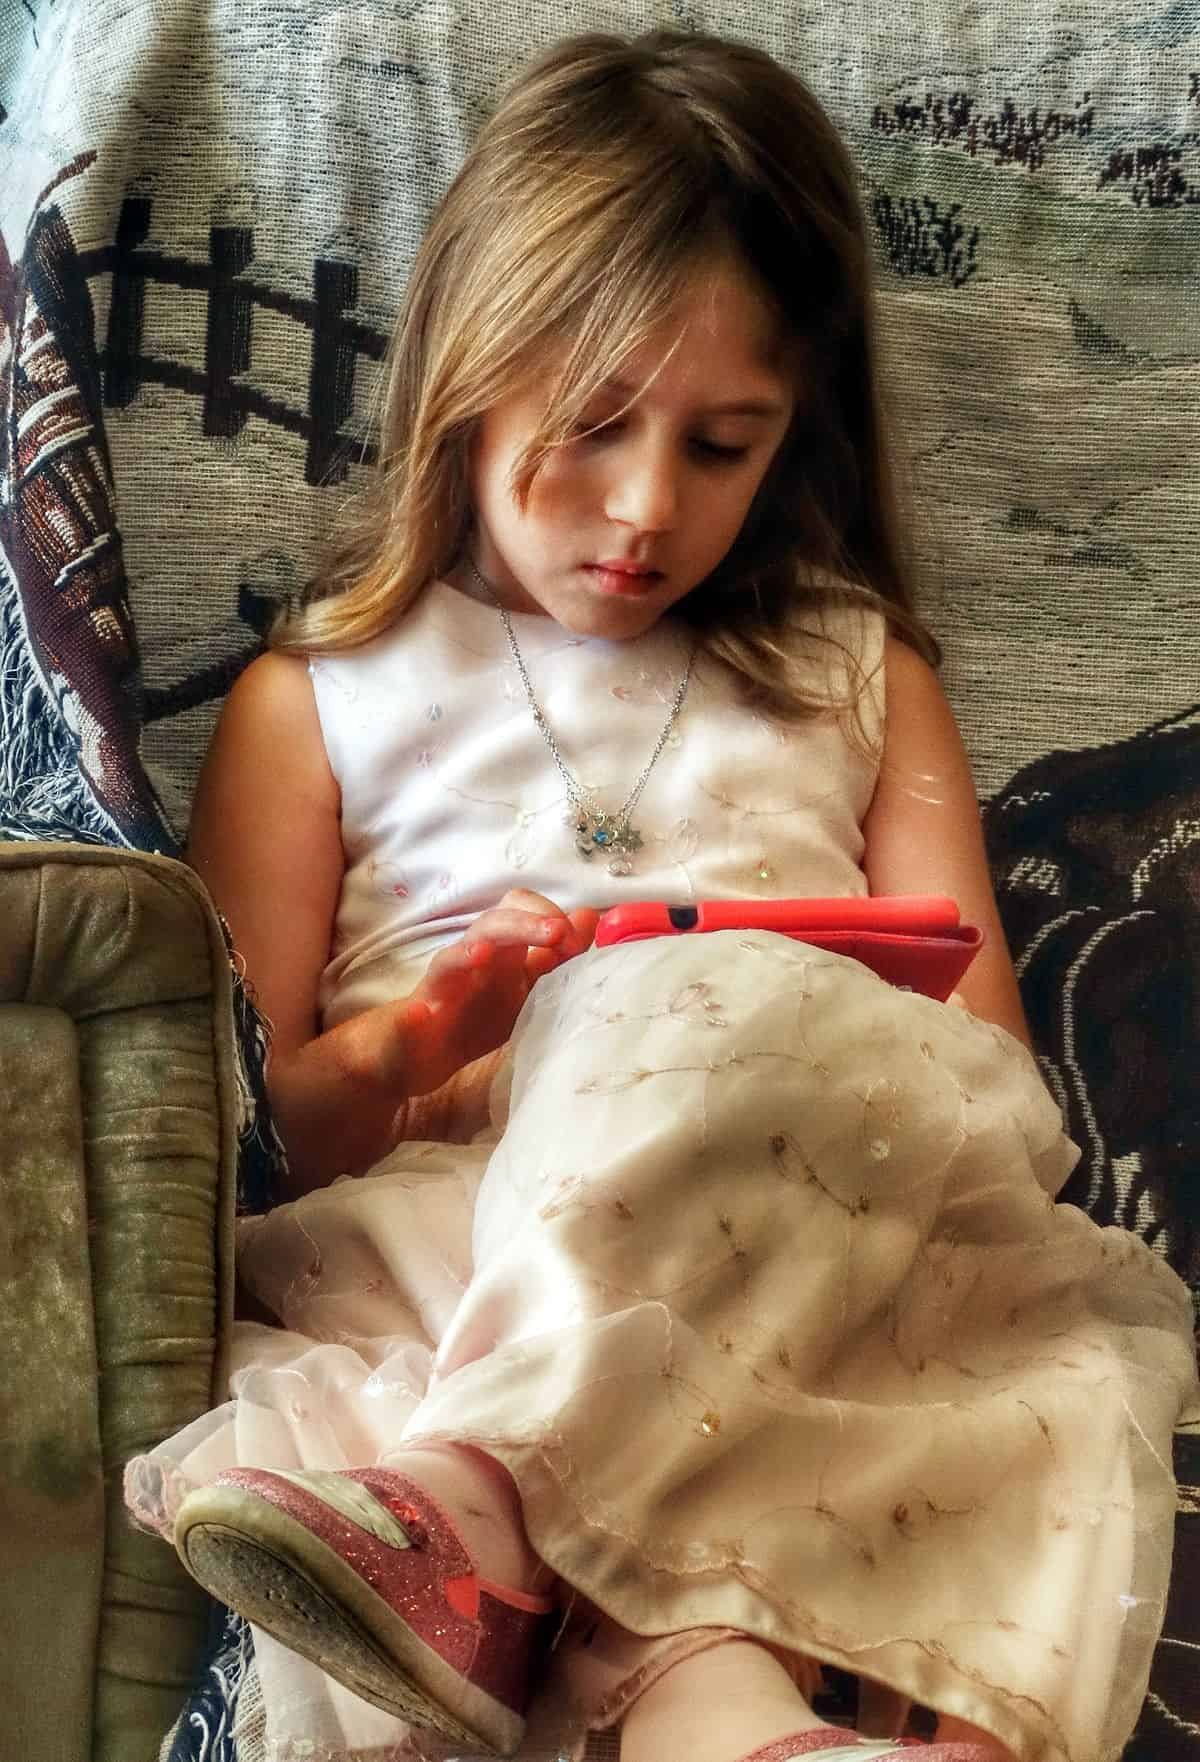 A photo of a young girl using an iPad, demonstrating one of the greatest benefits of accessible mobile UI design: an expanded, more diverse audience for your app.